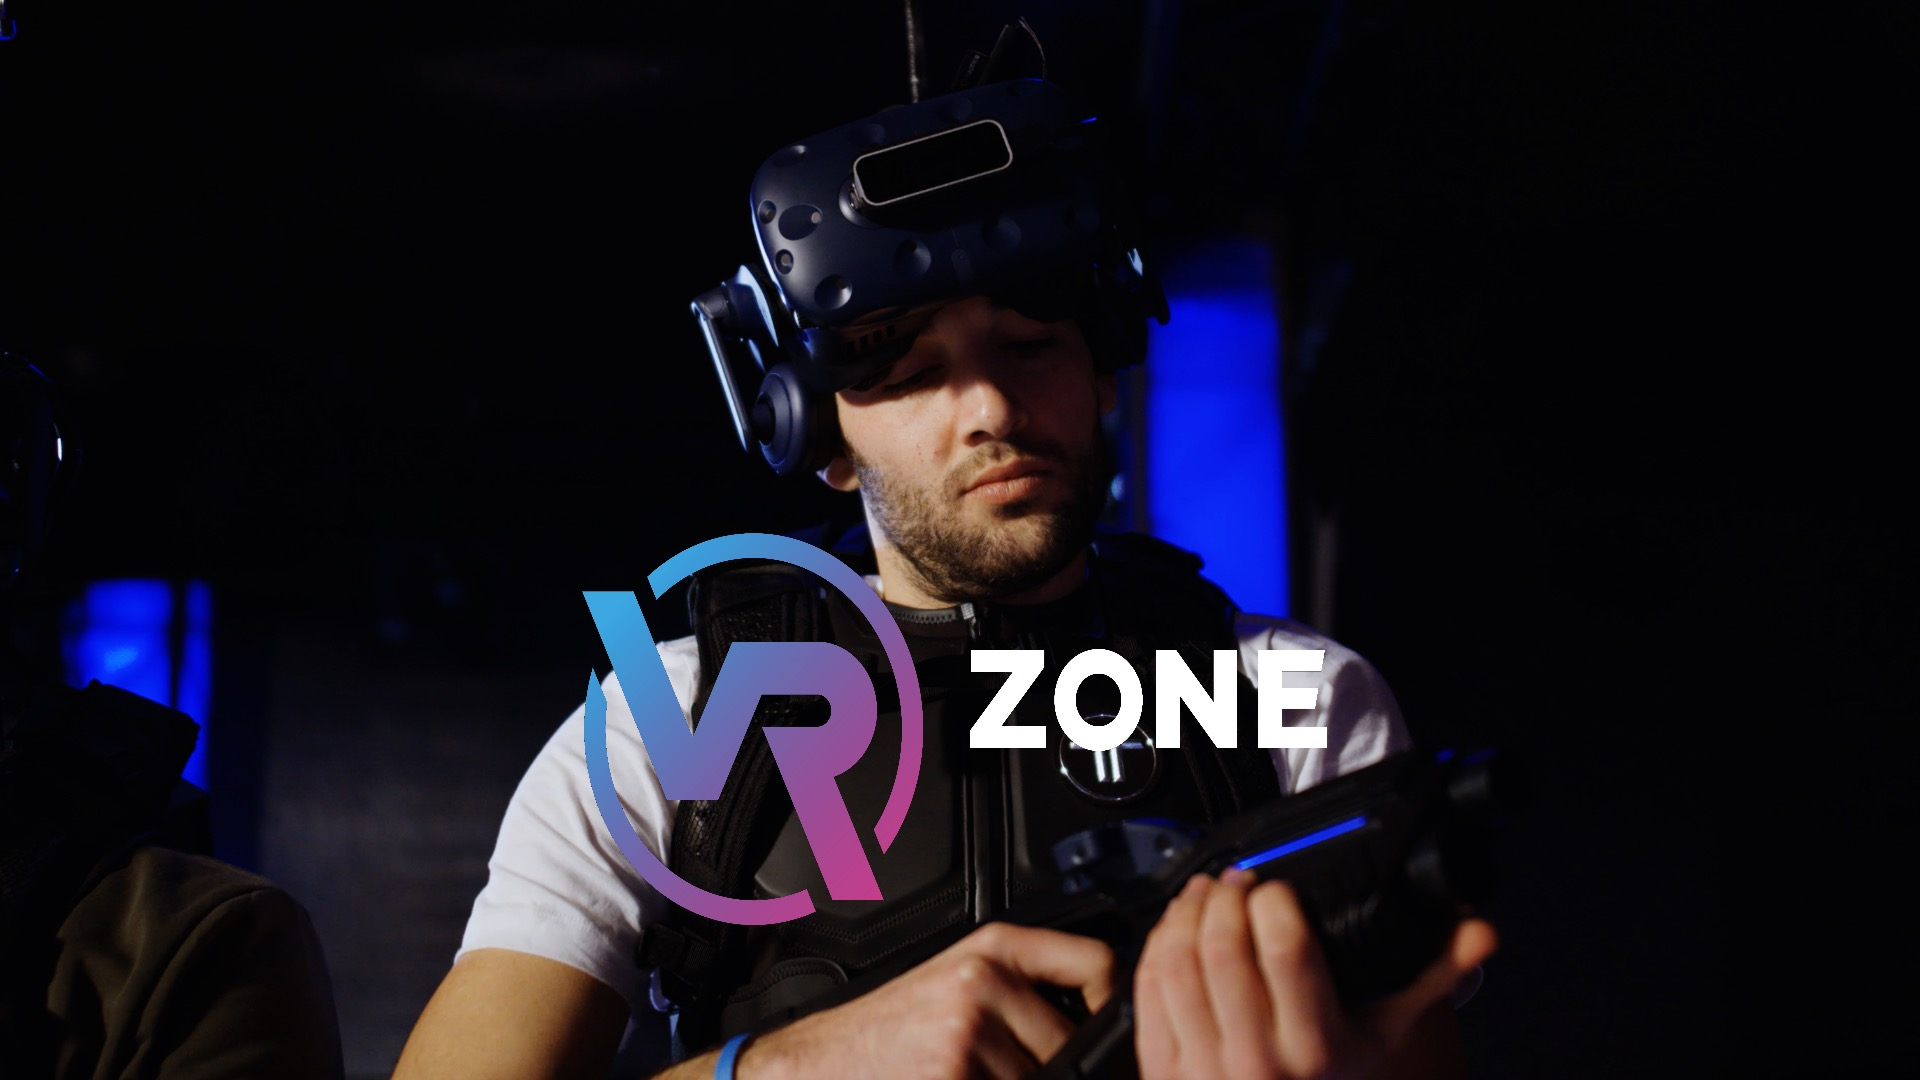 VR Zone Commercial